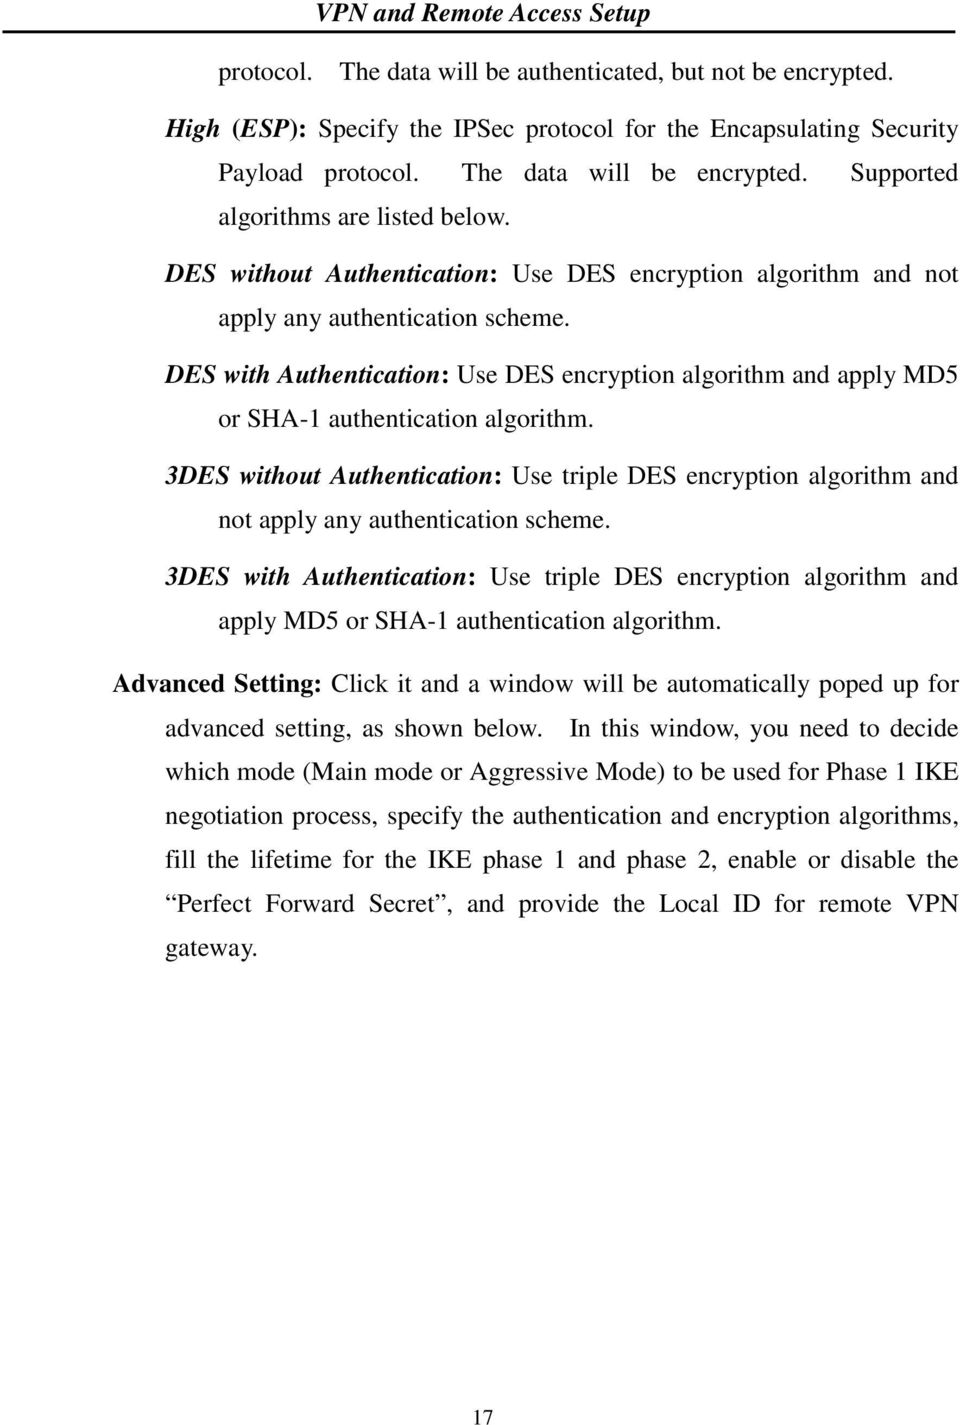 DES with Authentication: Use DES encryption algorithm and apply MD5 or SHA-1 authentication algorithm.